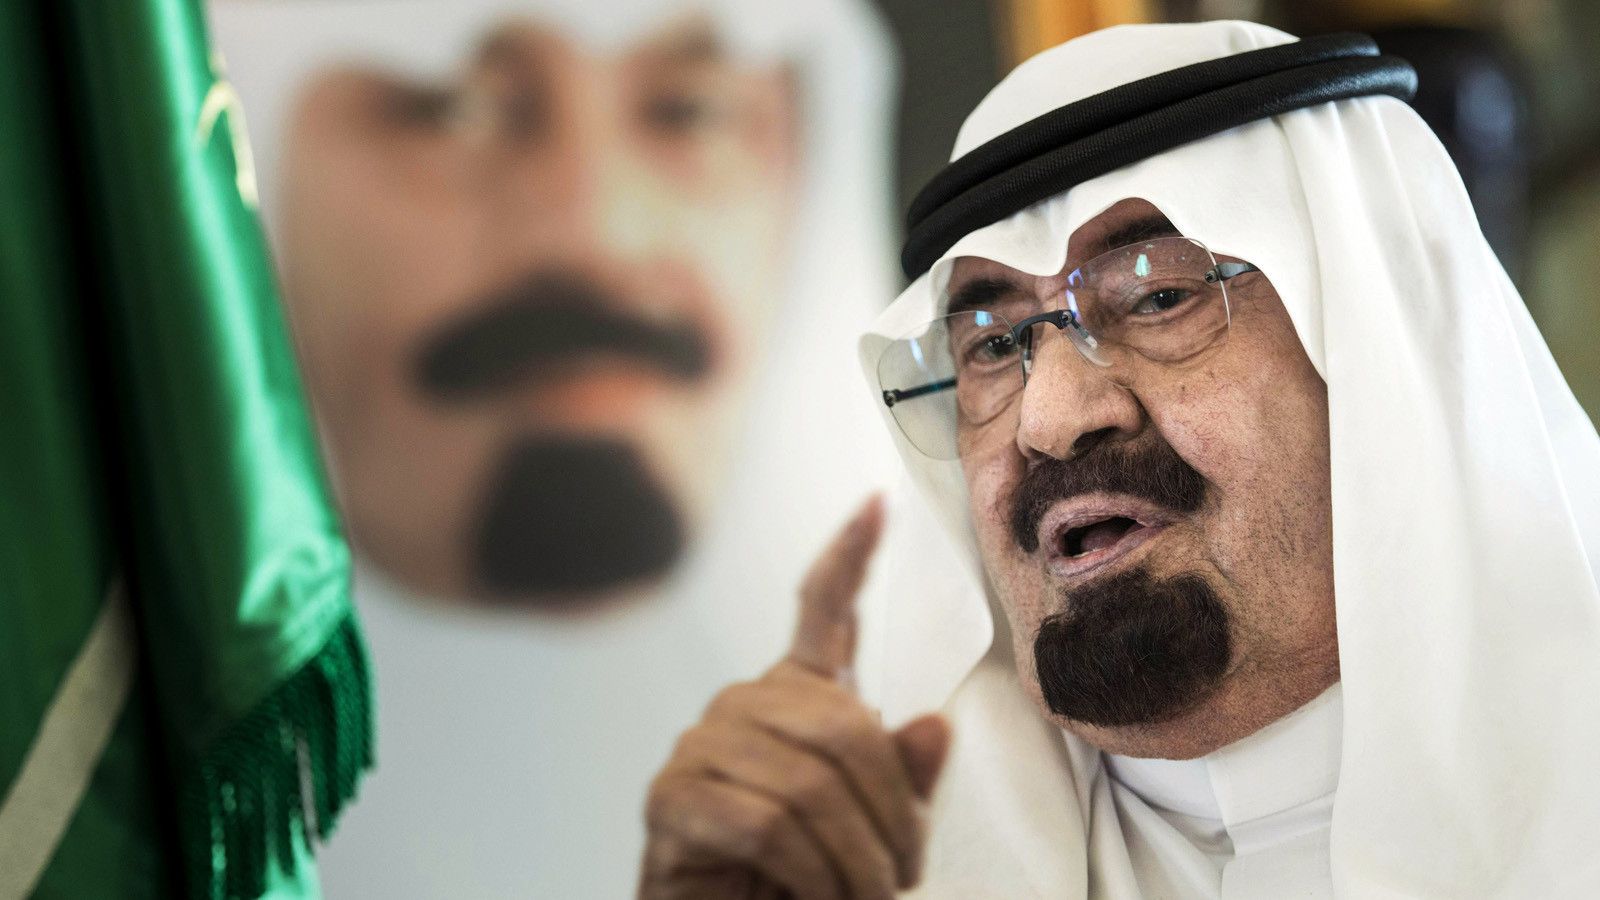 the cultural prosperity of the kingdom of saudi arabia under king abdullah The reign of custodian of the two holy mosques king abdullah proved transformative for the kingdom of saudi arabia the country's gdp more than doubled and gdp per capita roughly doubled in .